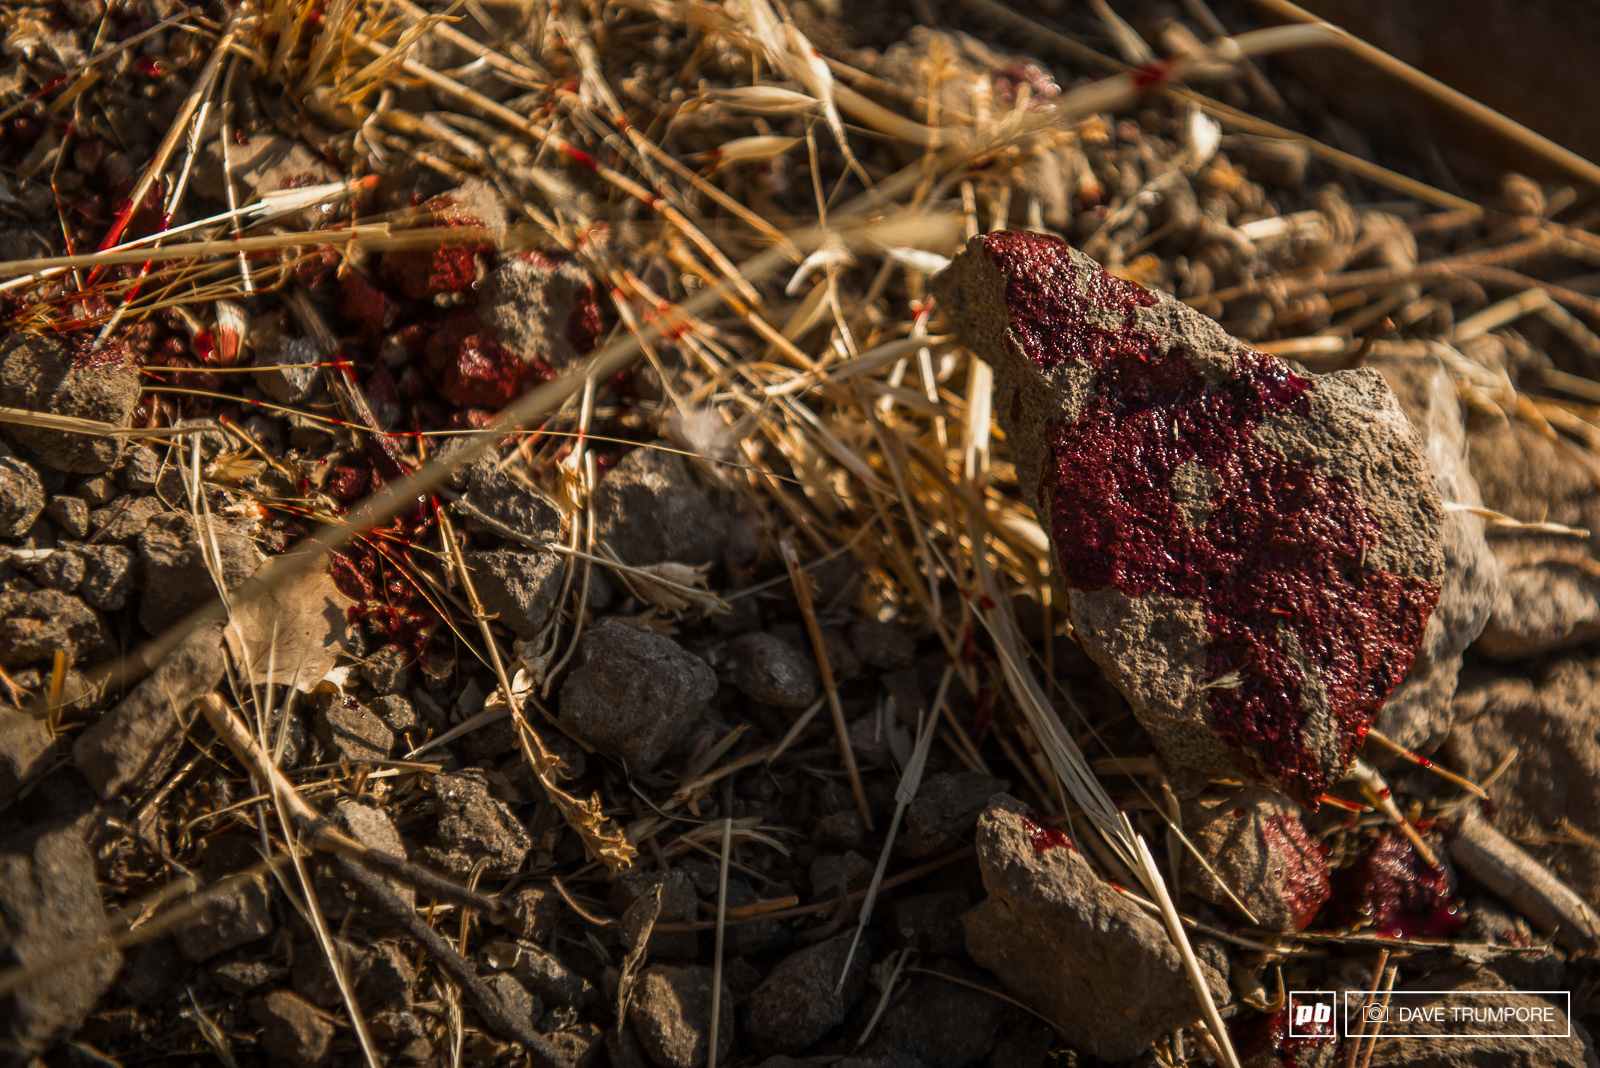 More than a few riders left their blood on the rocks of the Andes.